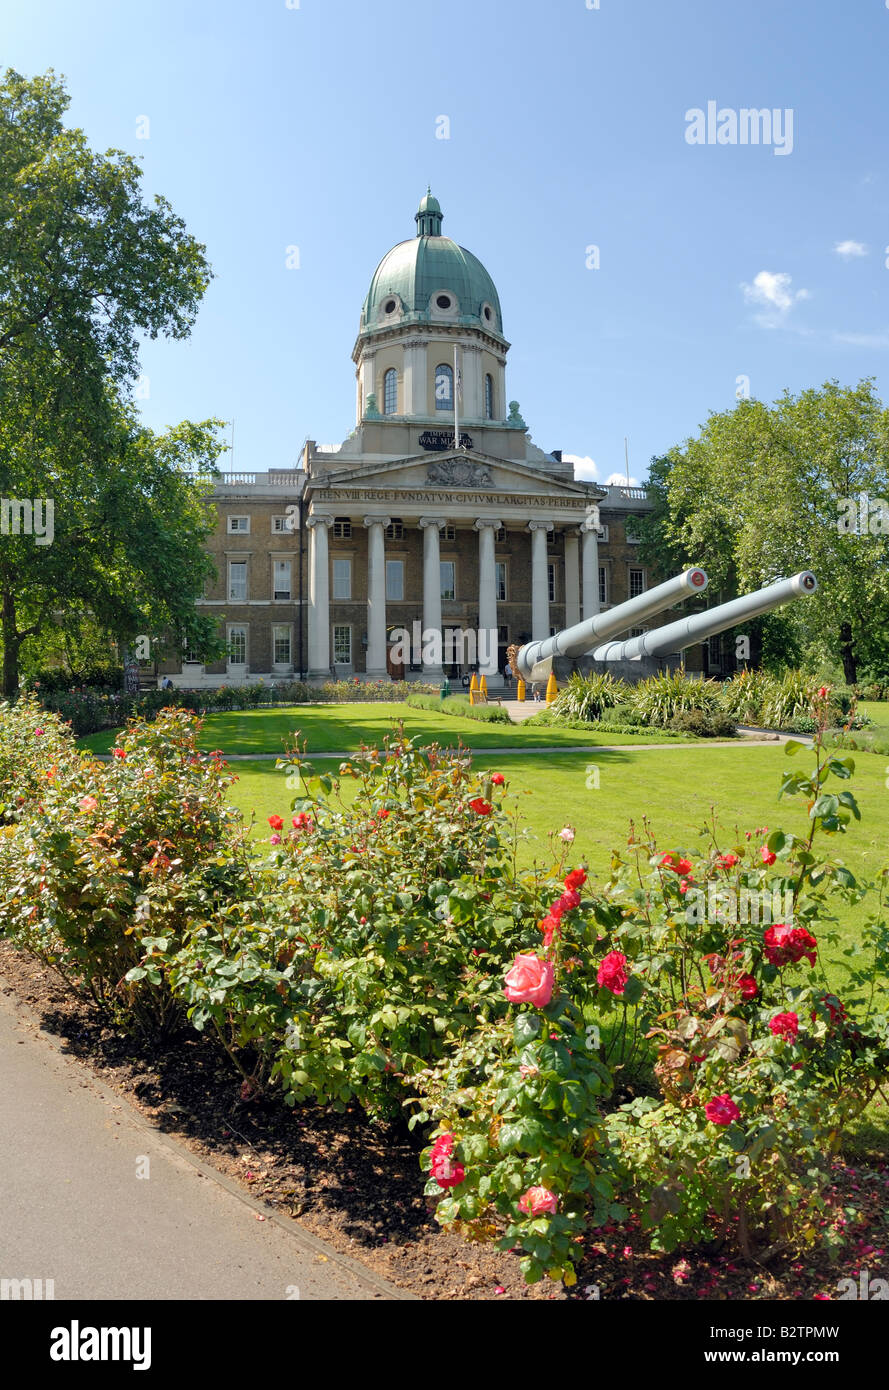 Imperial War Museum, London - Stock Image